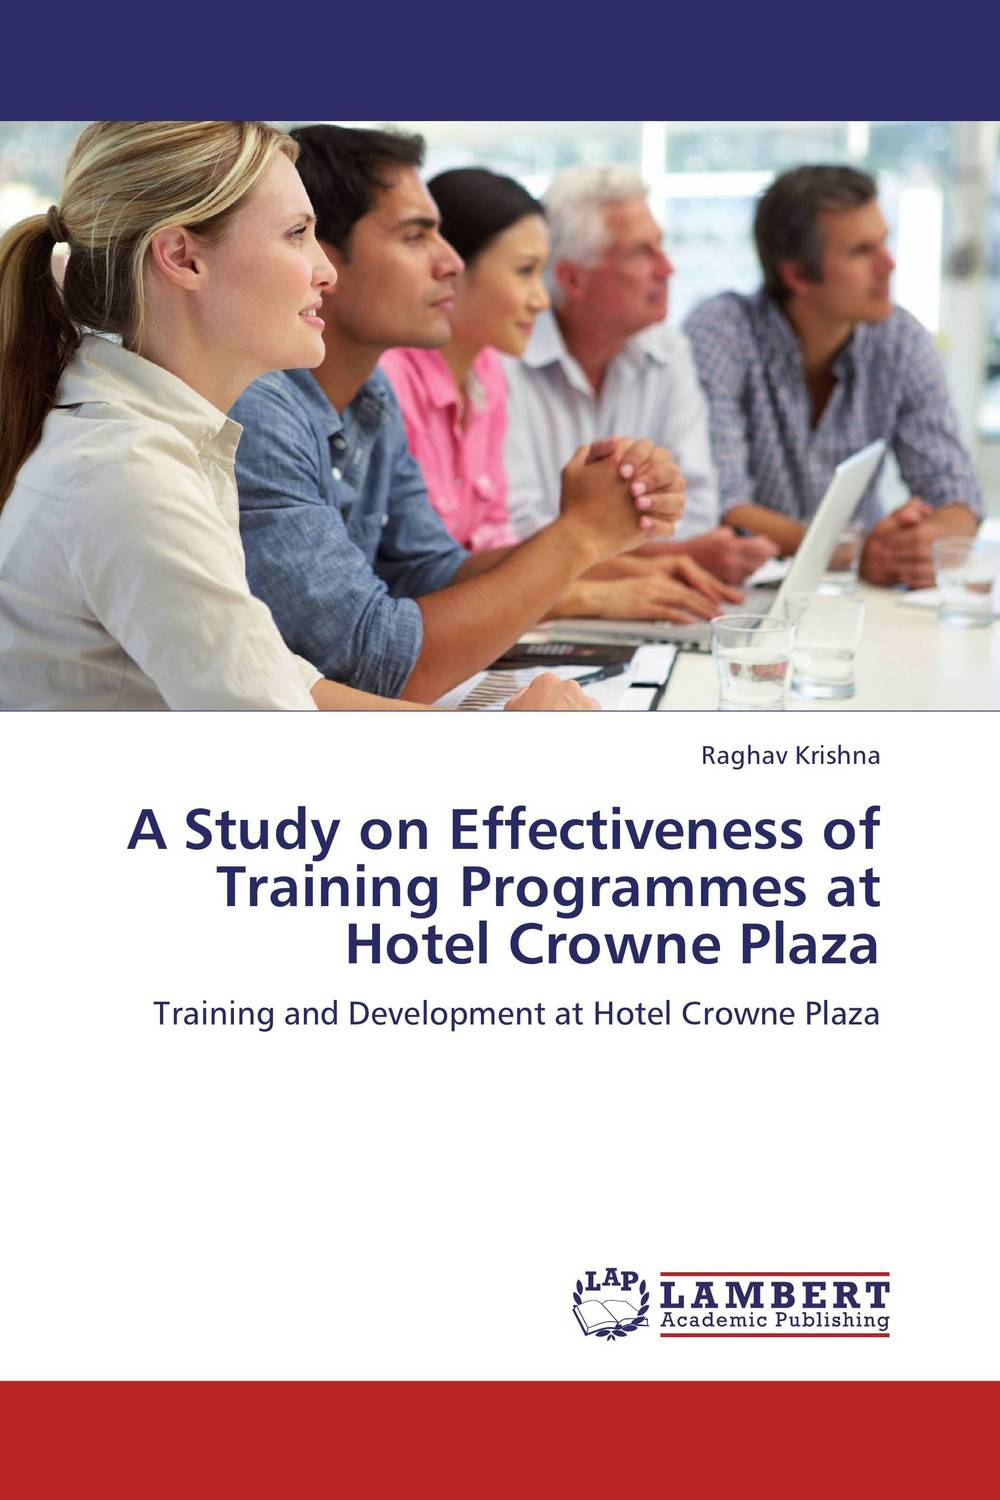 A Study on Effectiveness of Training Programmes at Hotel Crowne Plaza cassandra c green the effectiveness of a first year learning strategies seminar